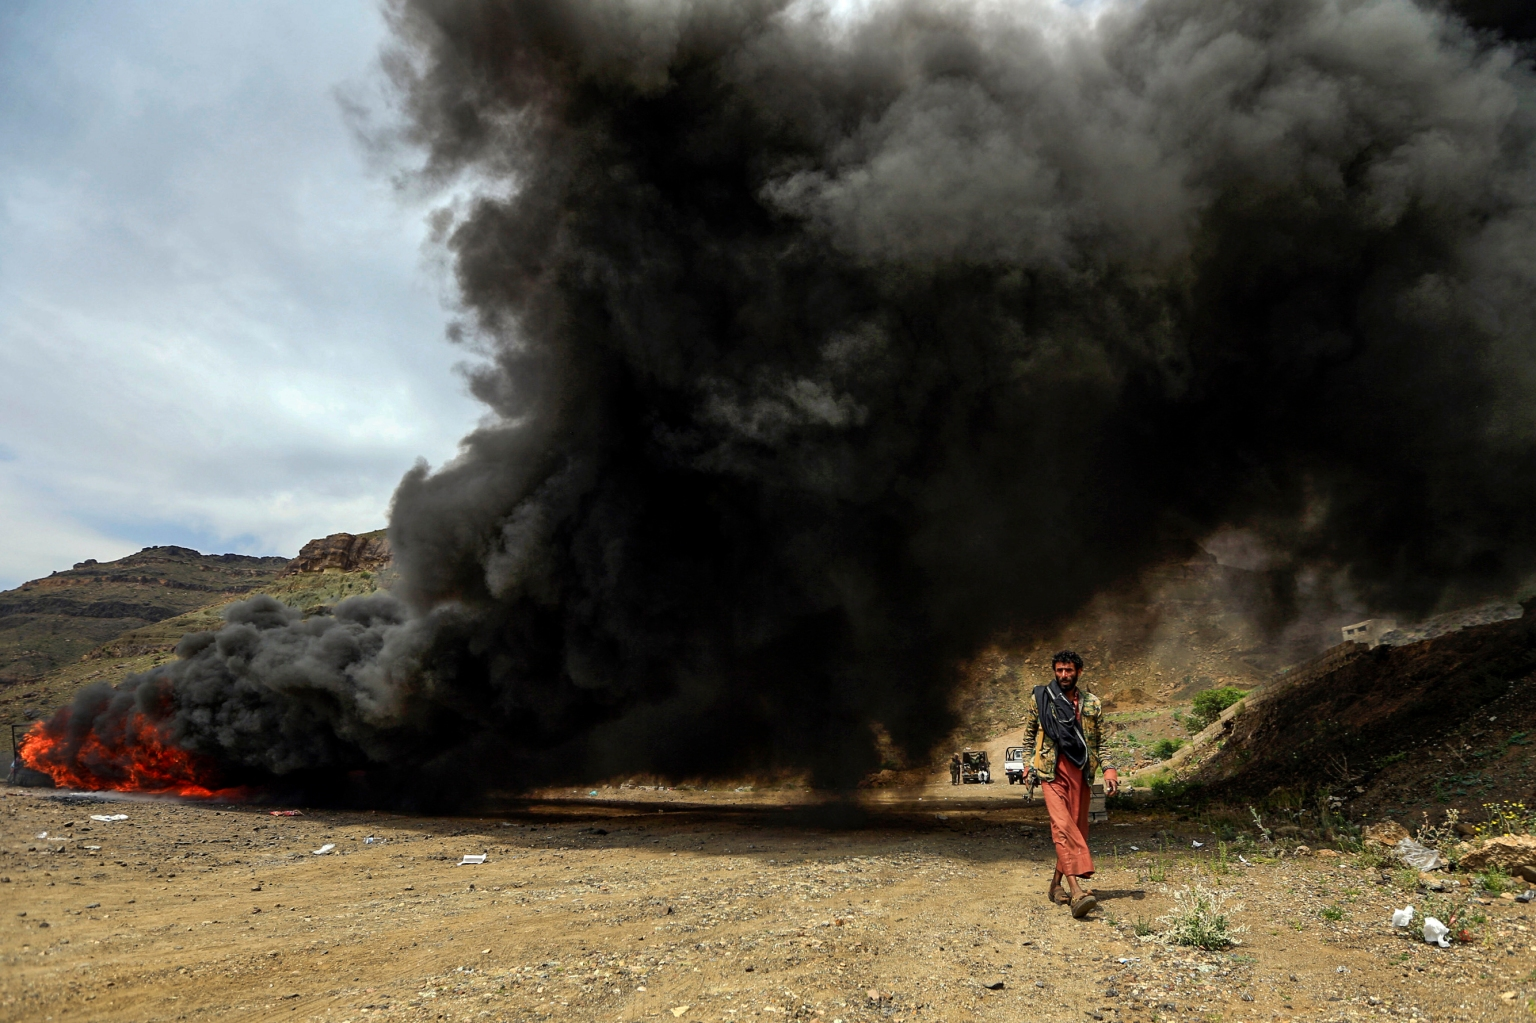 A Yemeni walks past a bonfire where narcotic substances seized by security forces loyal to Huthi rebels are incinerated in the rebel-held capital Sanaa on June 26. MOHAMMED HUWAIS/AFP/Getty Images